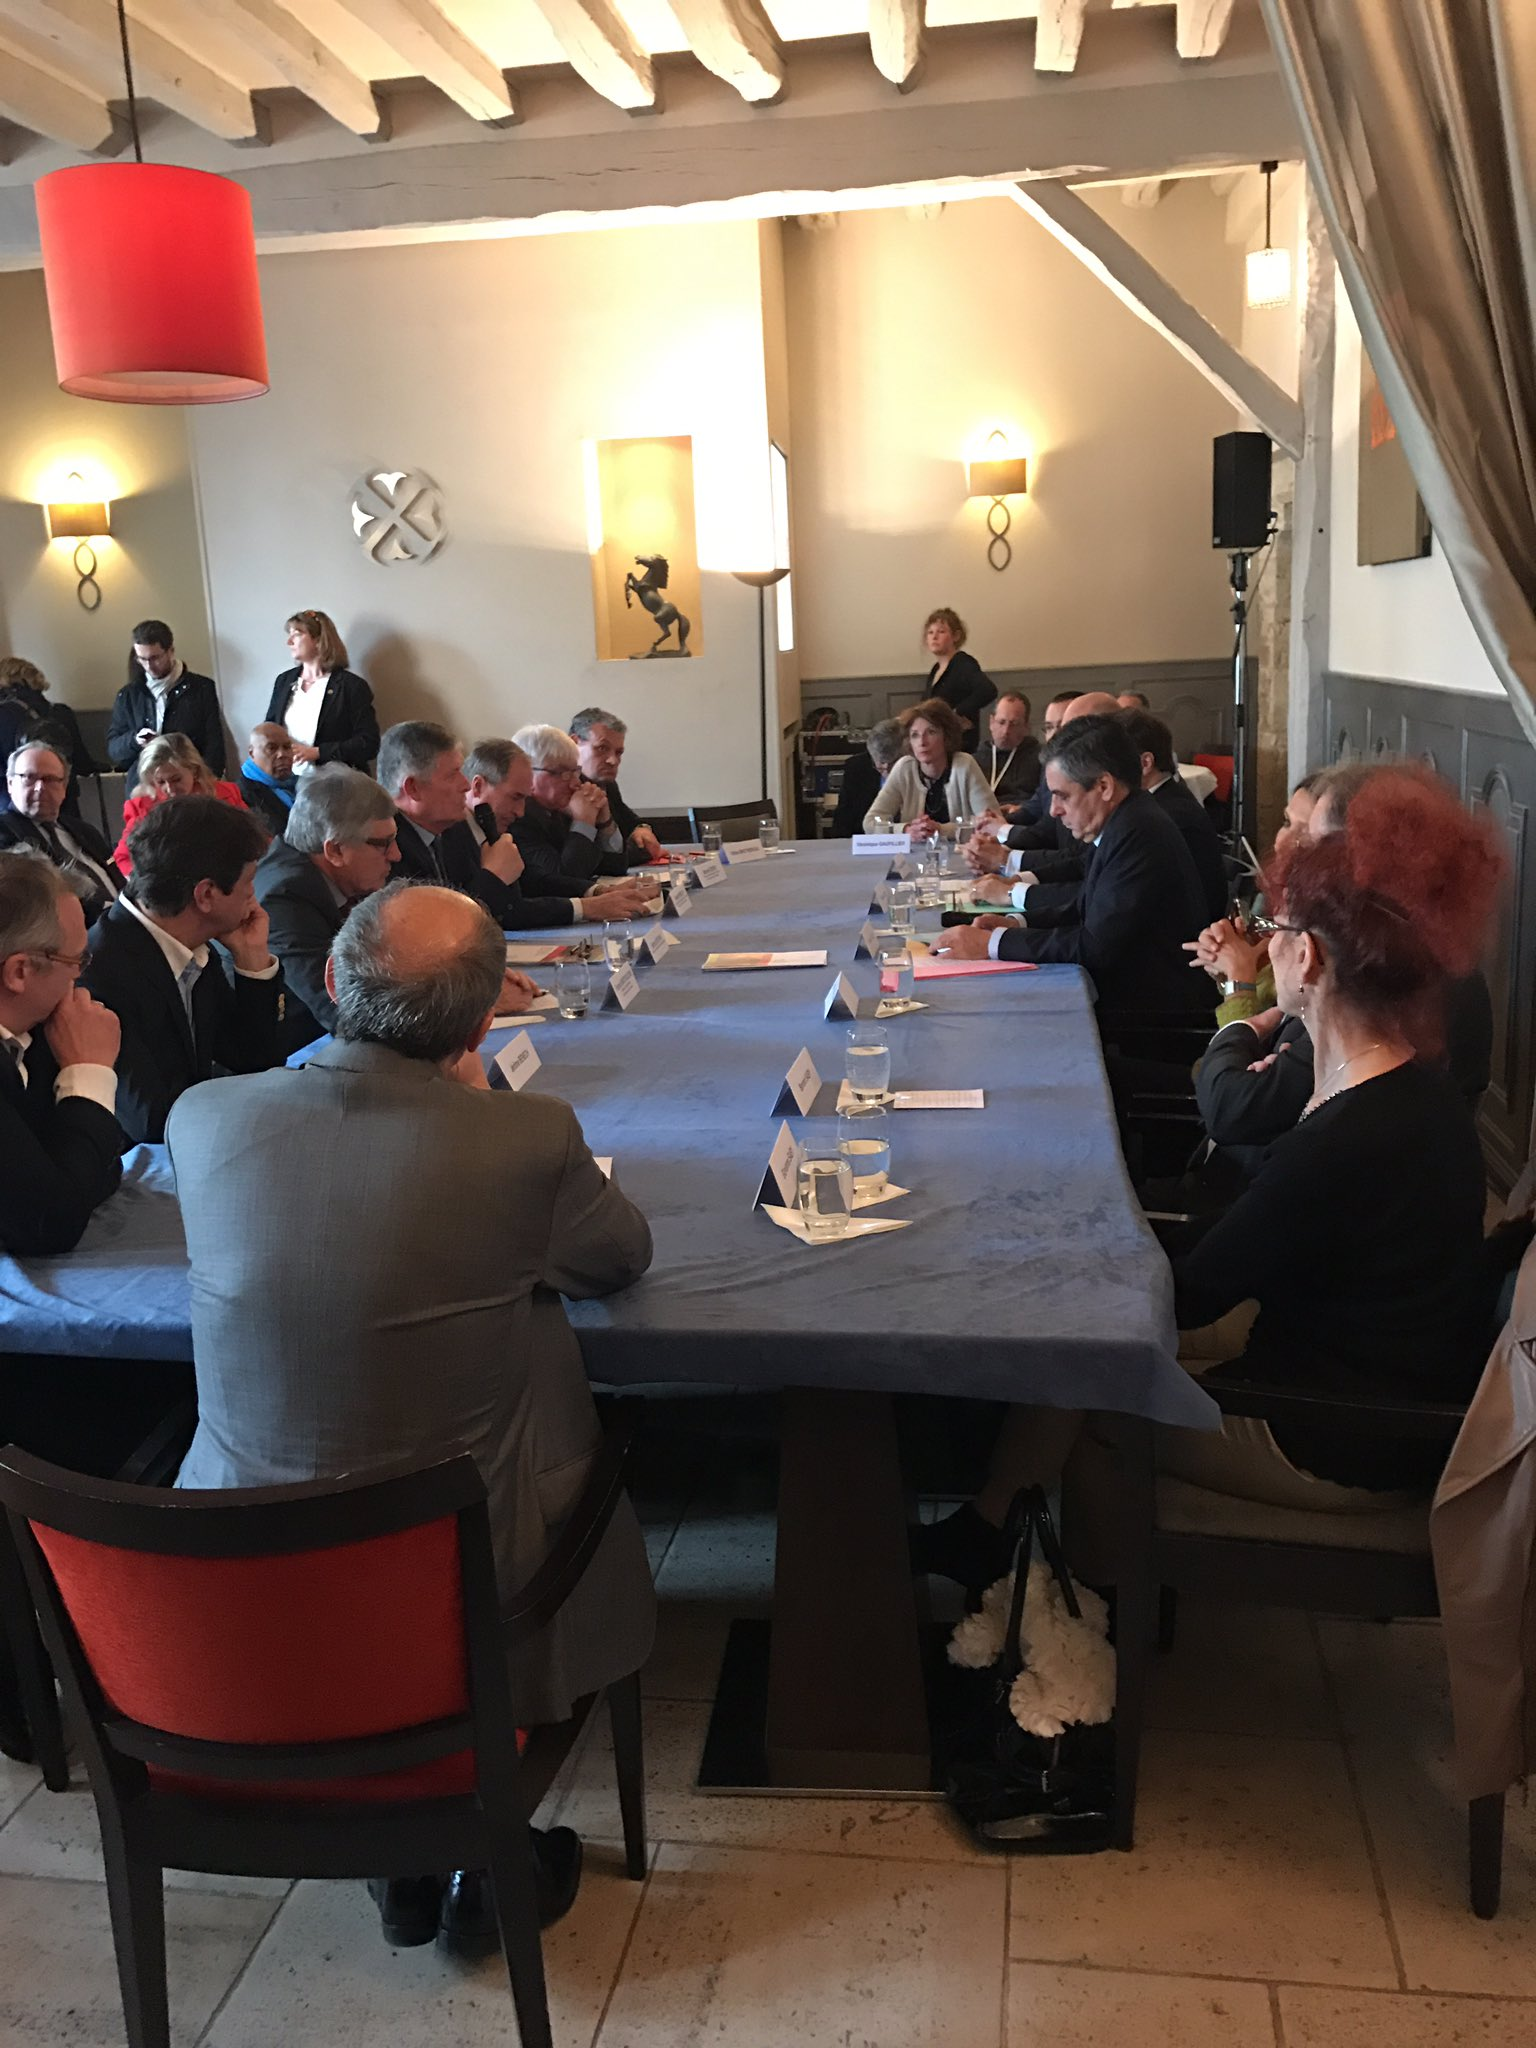 #Presidentielle2017 @Fed_Habillement table ronde à Provins sur la revitalisation des centres-villes avec F.Fillon https://t.co/ULFK2g6iZV